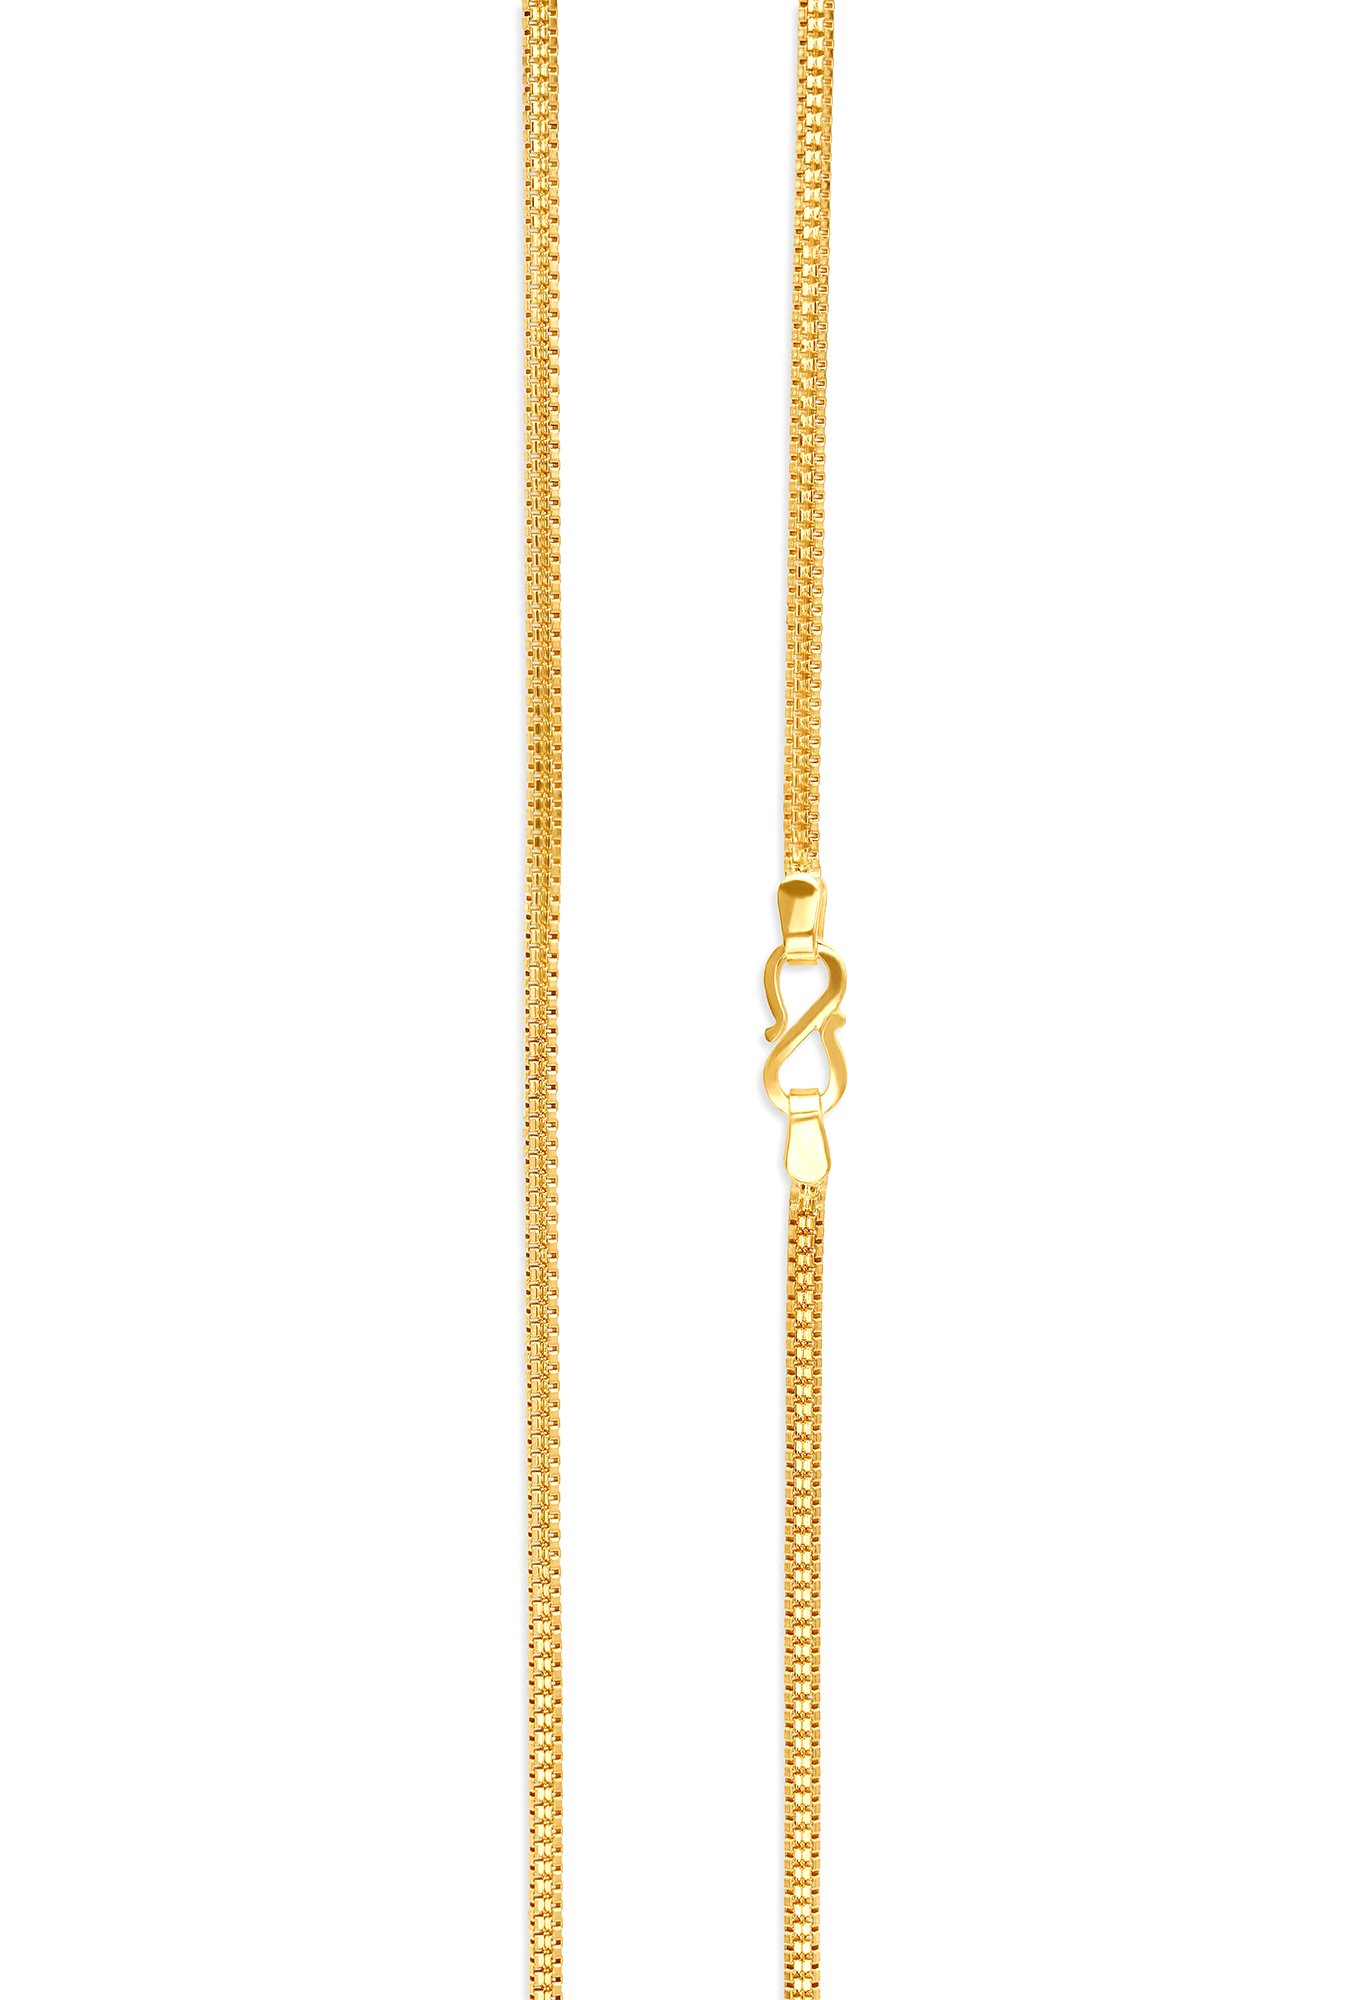 Buy Stylish Yellow Gold Tanishq Necklace 510956CAFMCA00 At ... |Tanishq Gold Chain For Men With Price